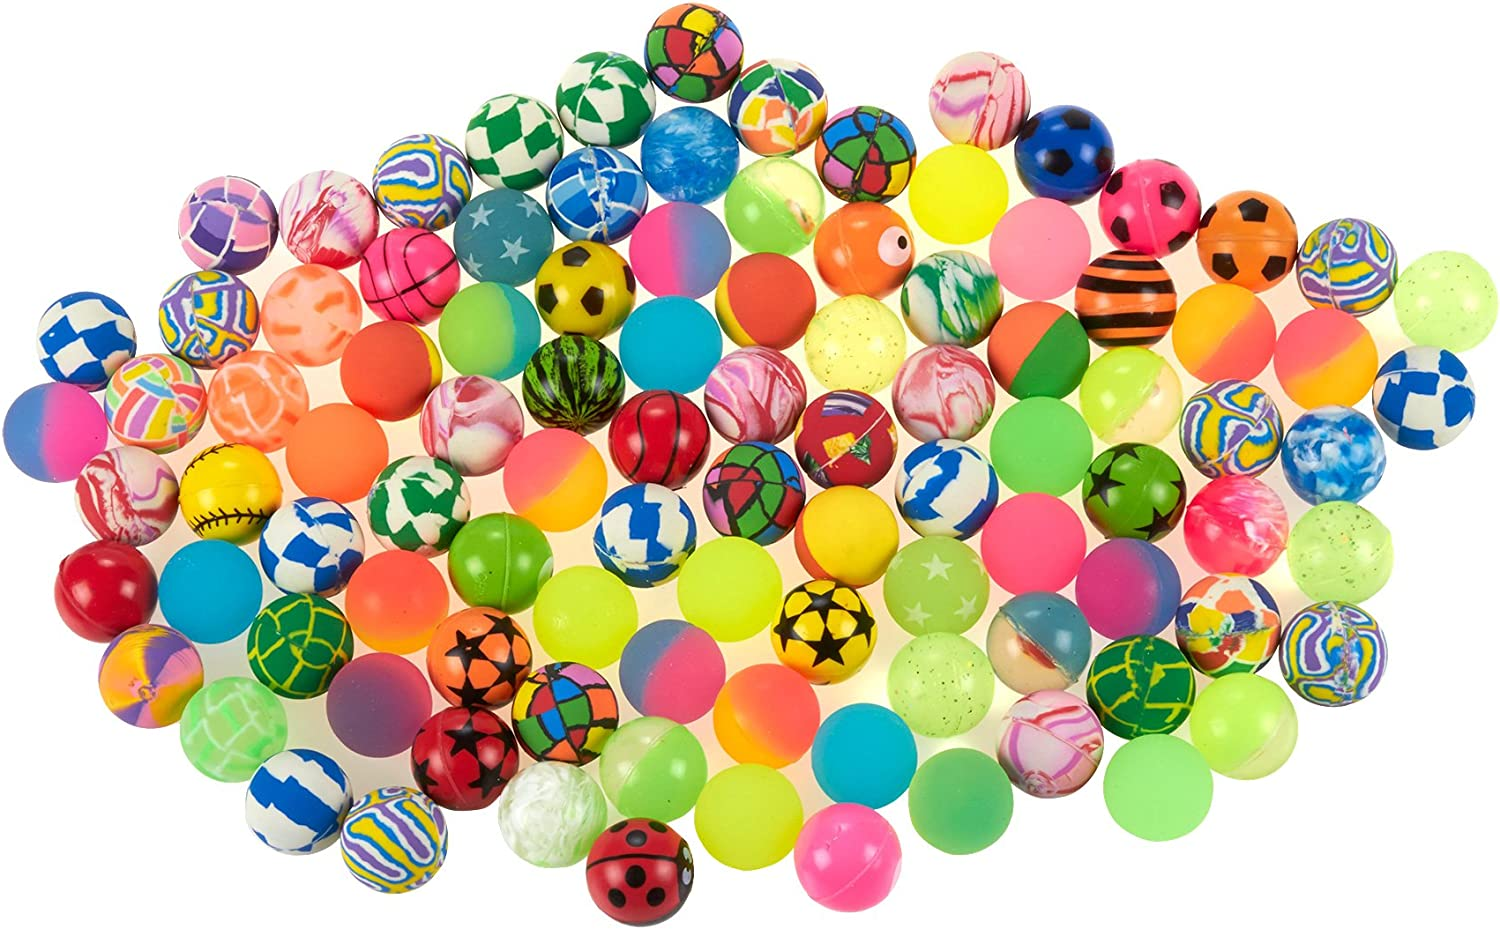 Bouncy Balls - Farbeful Bright Solid Farbe High Bouncing Balls Bulk Assorted Designs - 100 pcs 3.2cm - Bouncing Toy Balls For Family Kids Boys Girls Fun